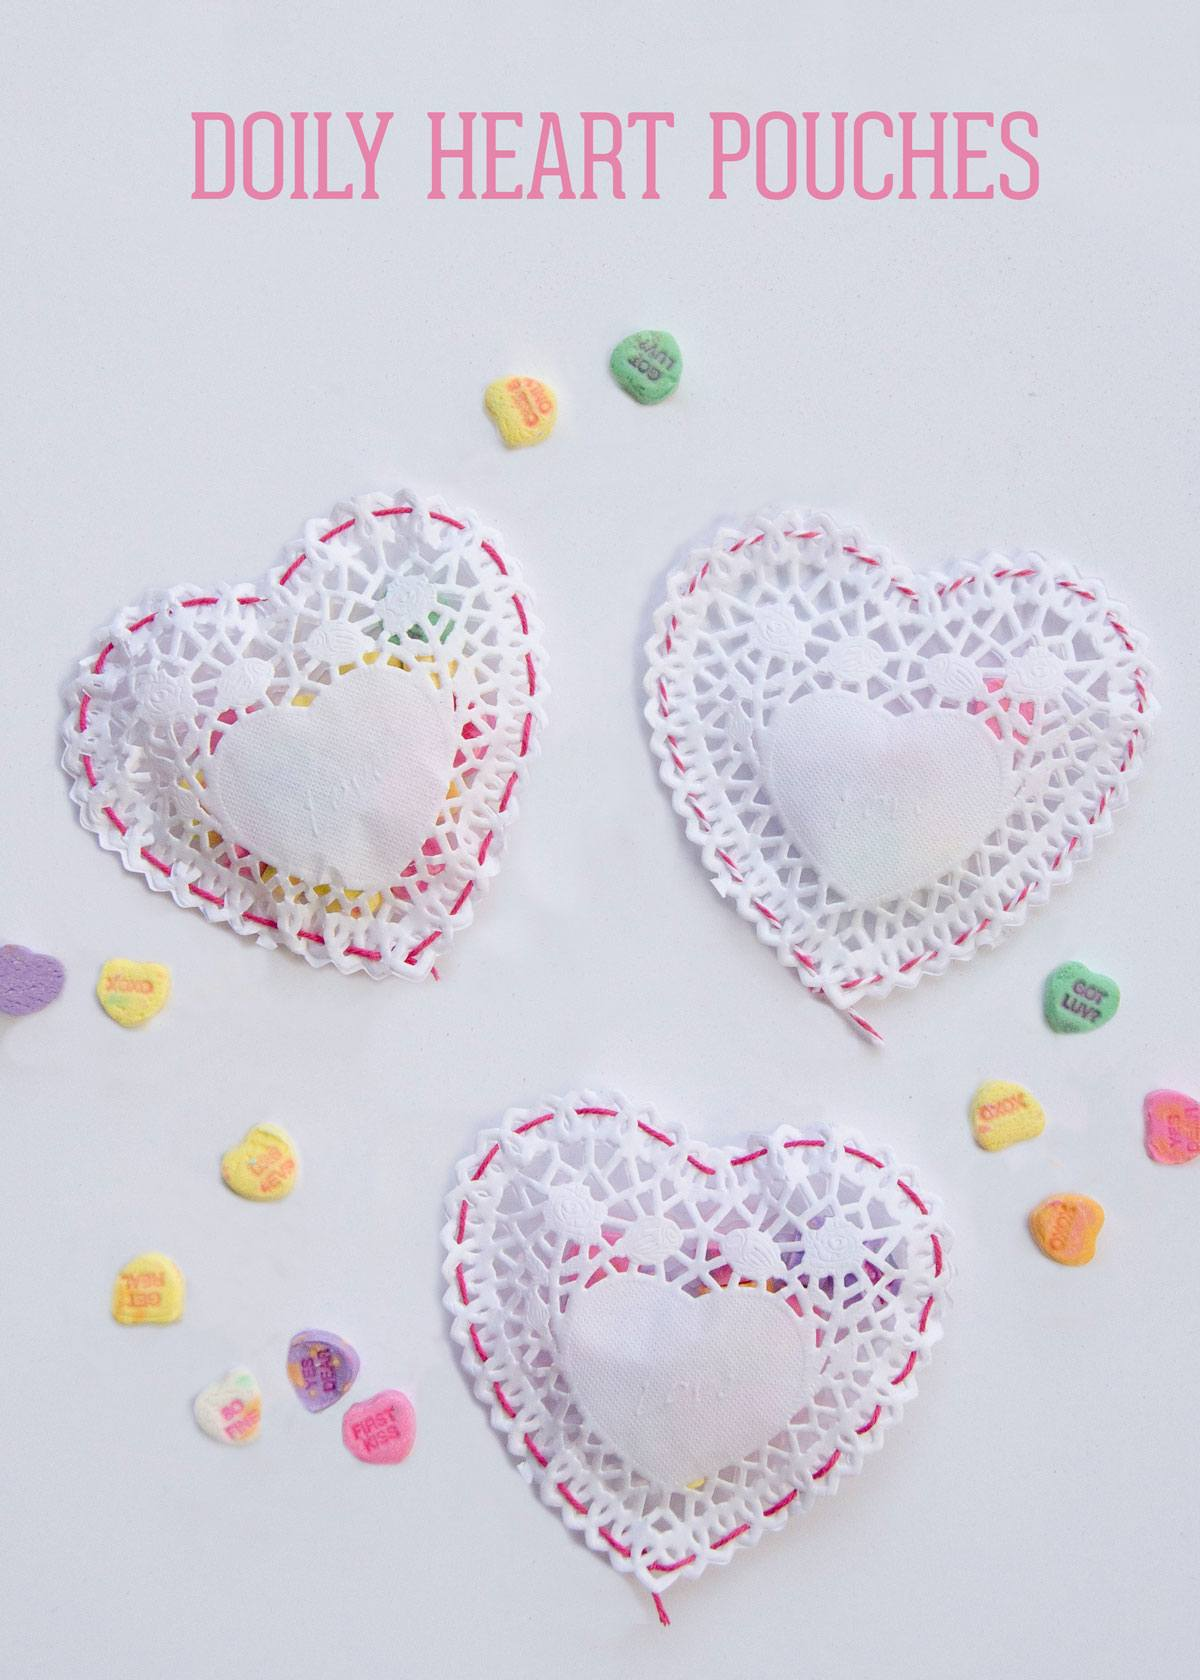 Doily craft ideas by lindi haws of love the day